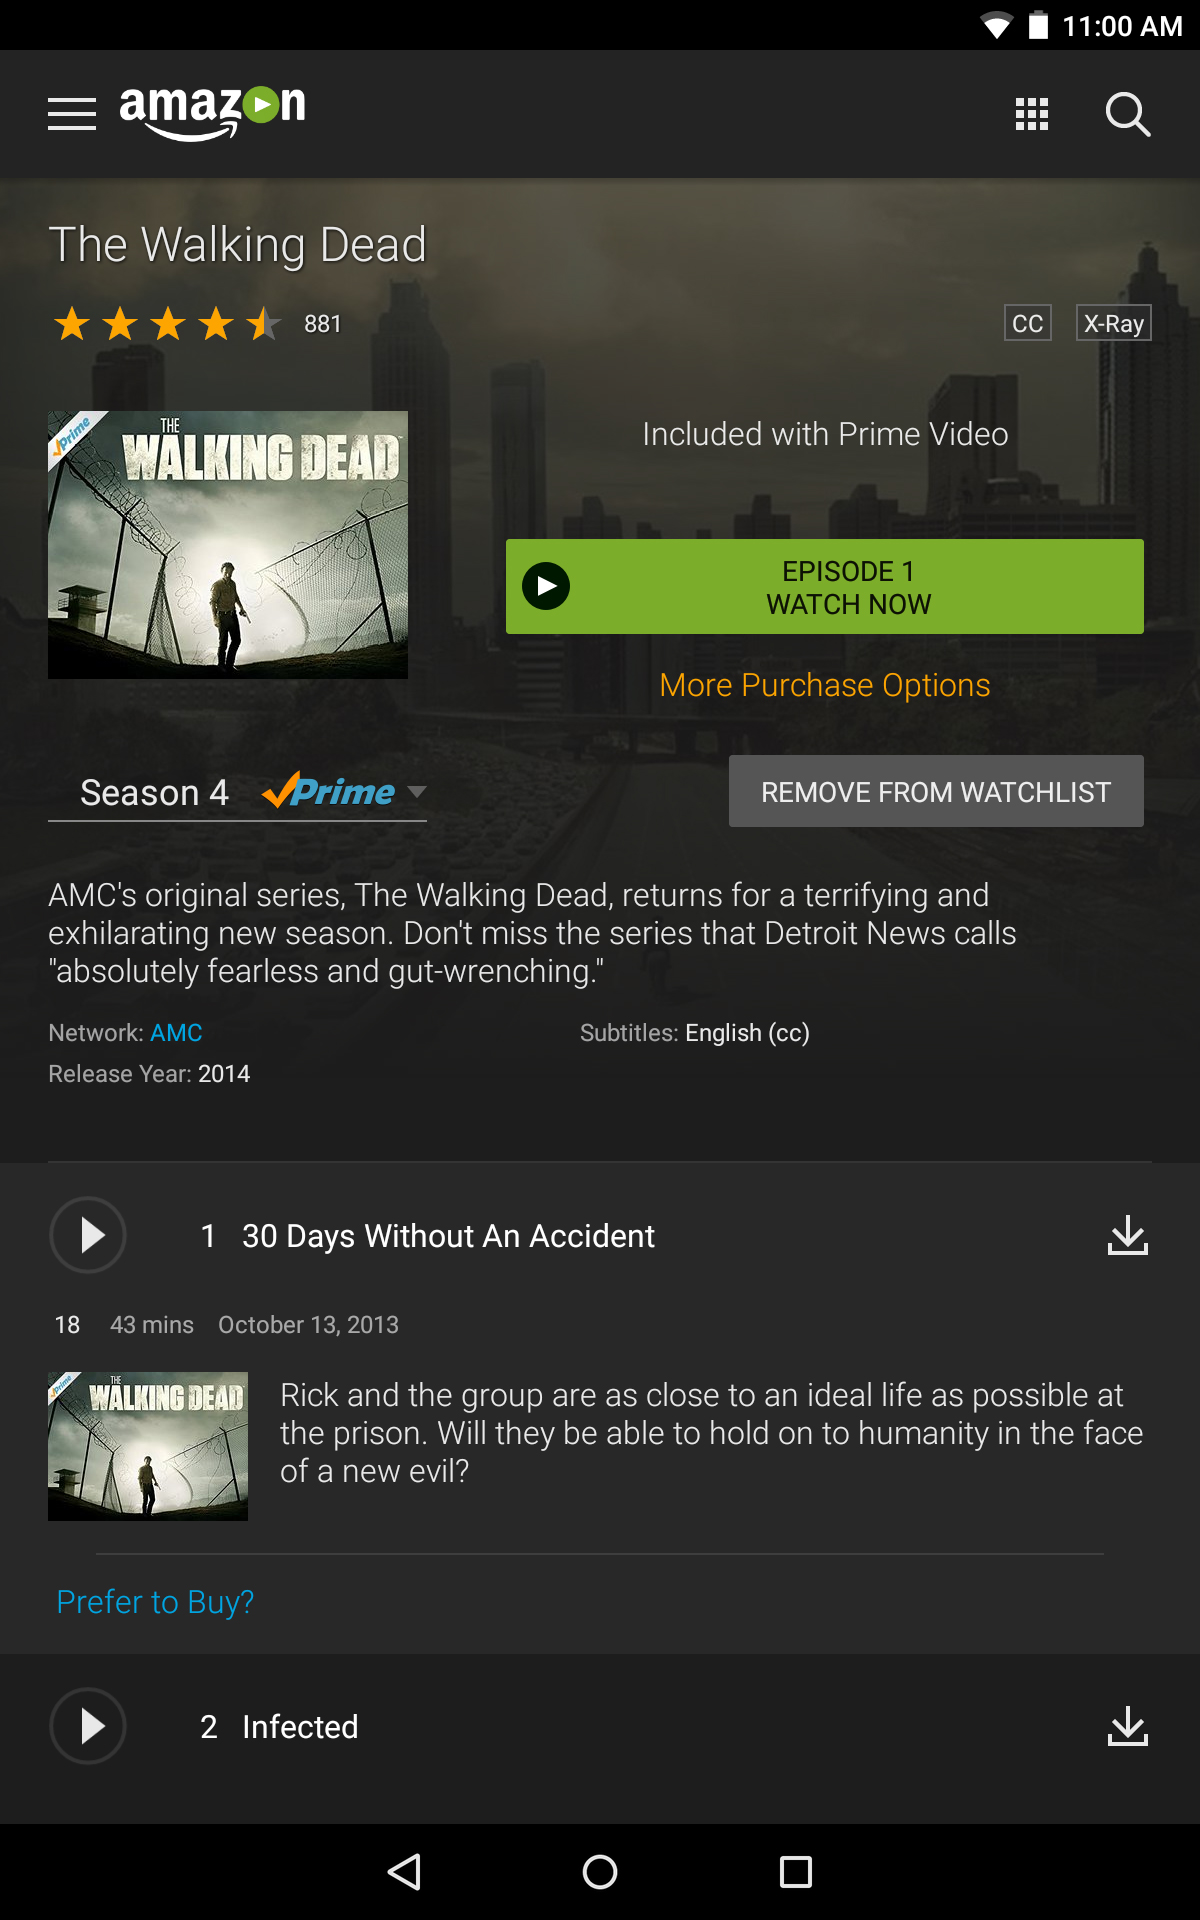 Amazon Prime Video: Amazon.co.uk: Appstore For Android